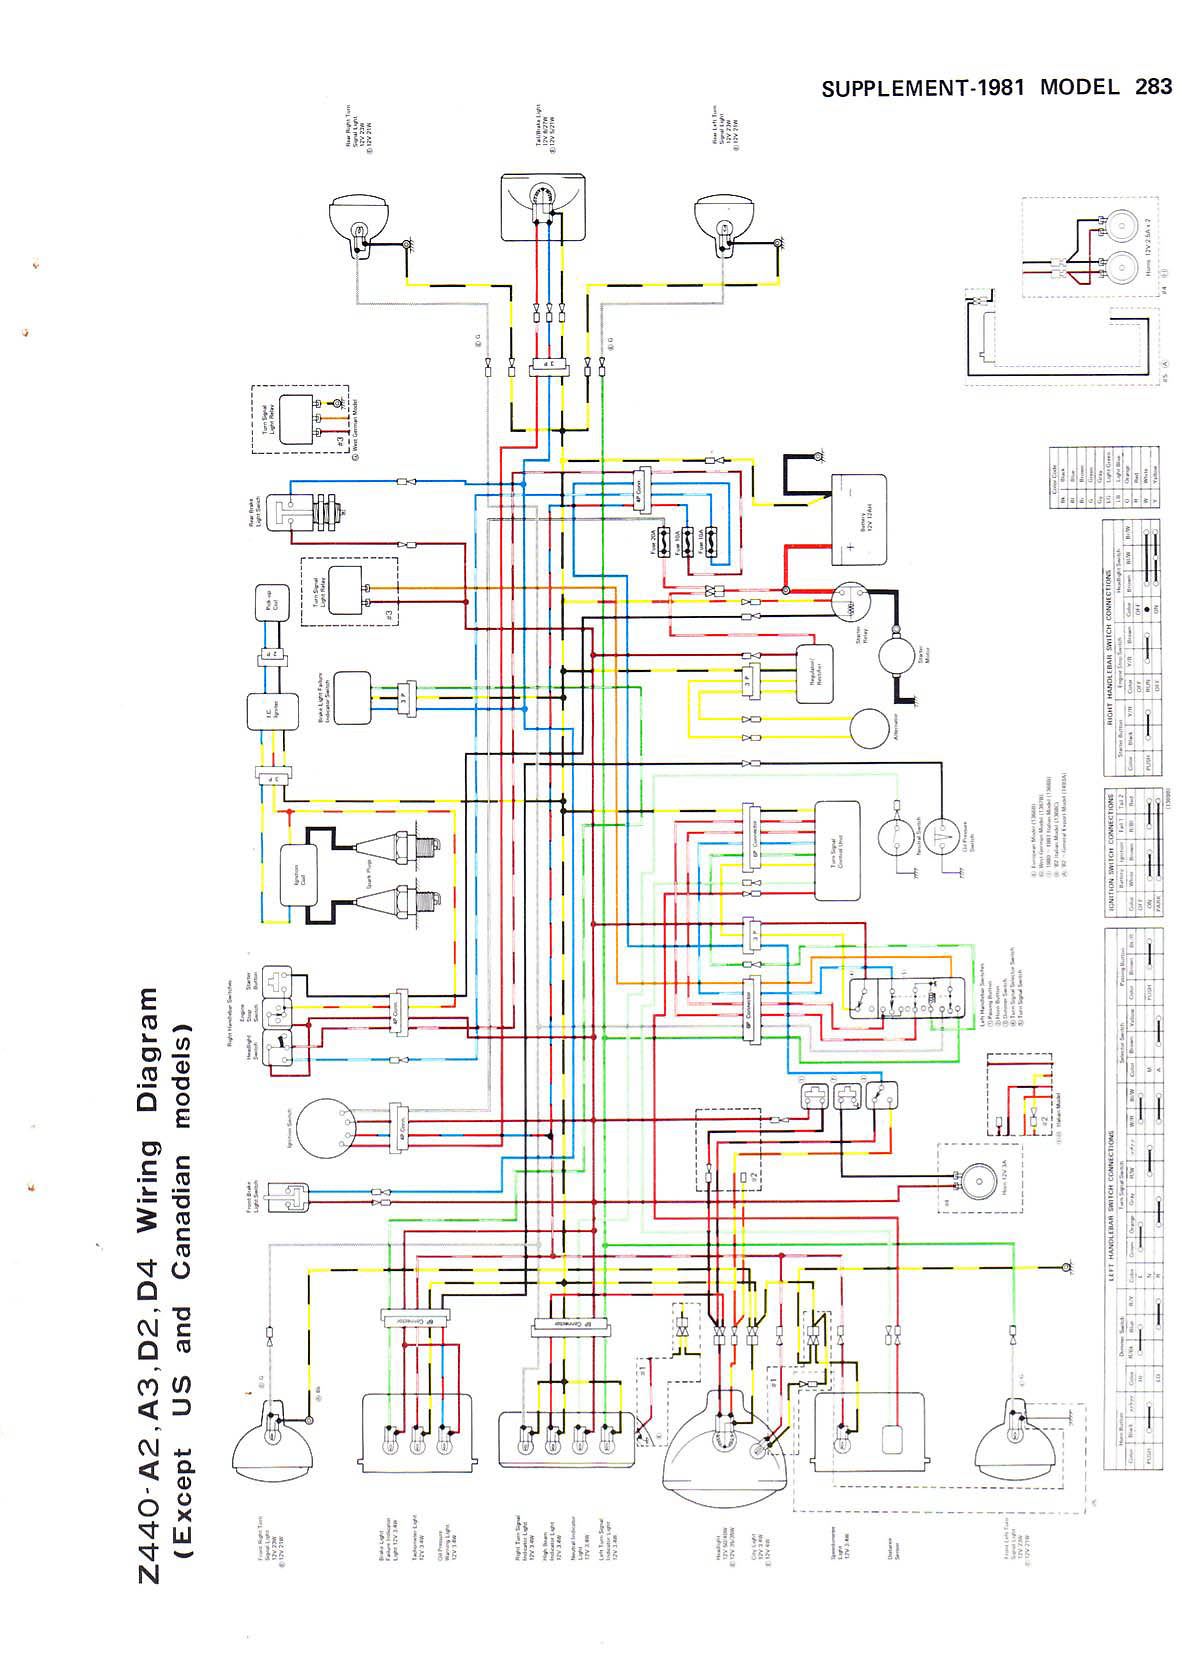 Kawasaki KZ 440 %2780 a %2782 Service Manual_Page_280 index of kz440 wiring diagrams 1980 kawasaki kz440 wiring diagram at readyjetset.co